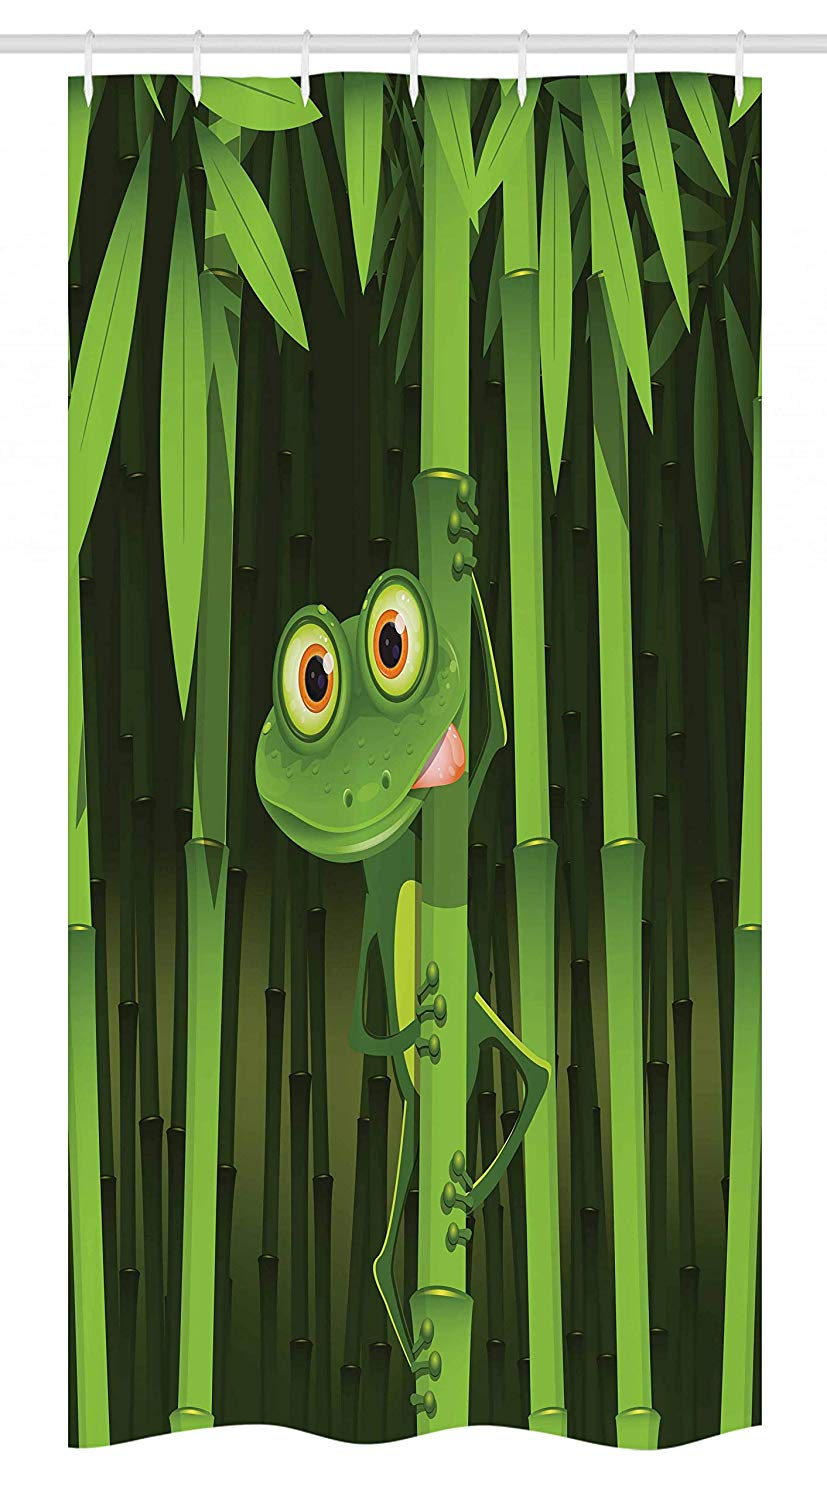 Ambesonne Animal Stall Shower Curtain, Funny Illustration of Friendly Fun Frog on Stem of The Bamboo Jungle Trees Nature, Fabric Bathroom Decor Set with Hooks, 36